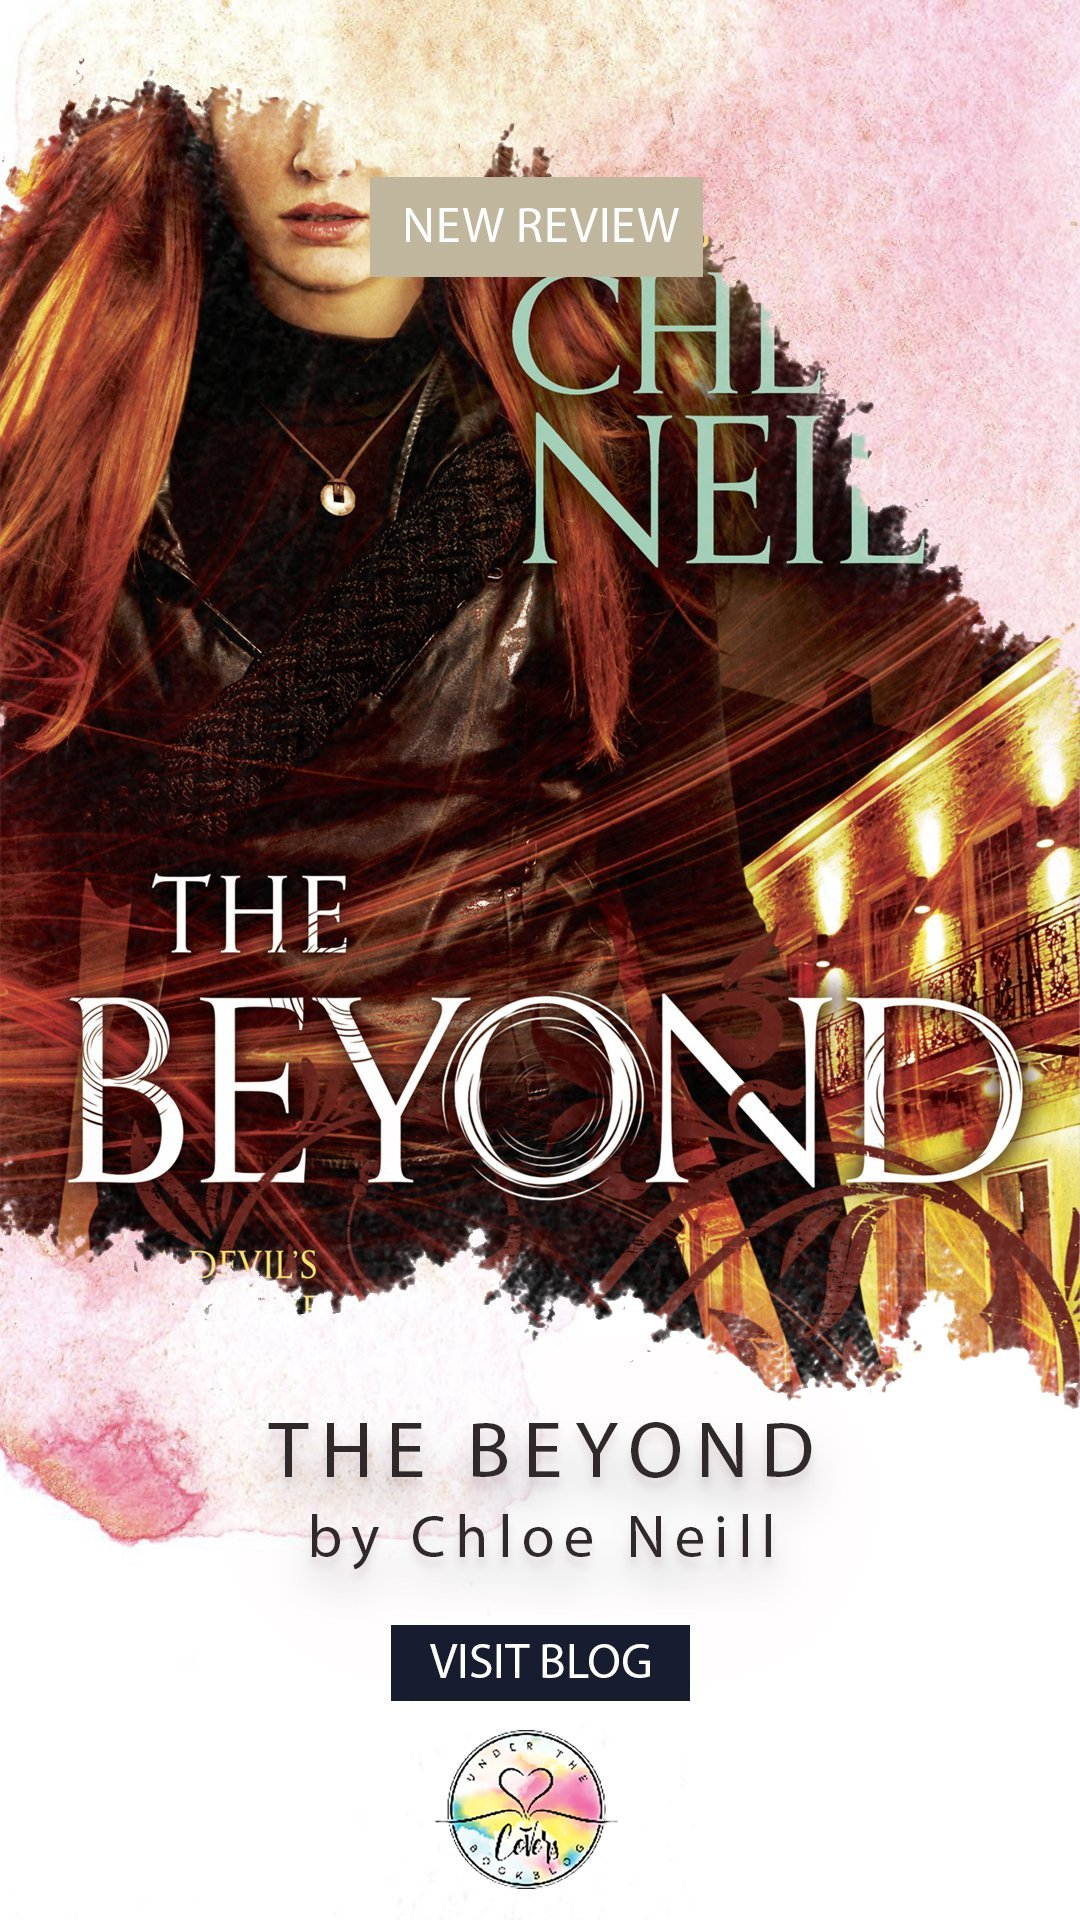 ARC Review: The Beyond by Chloe Neill